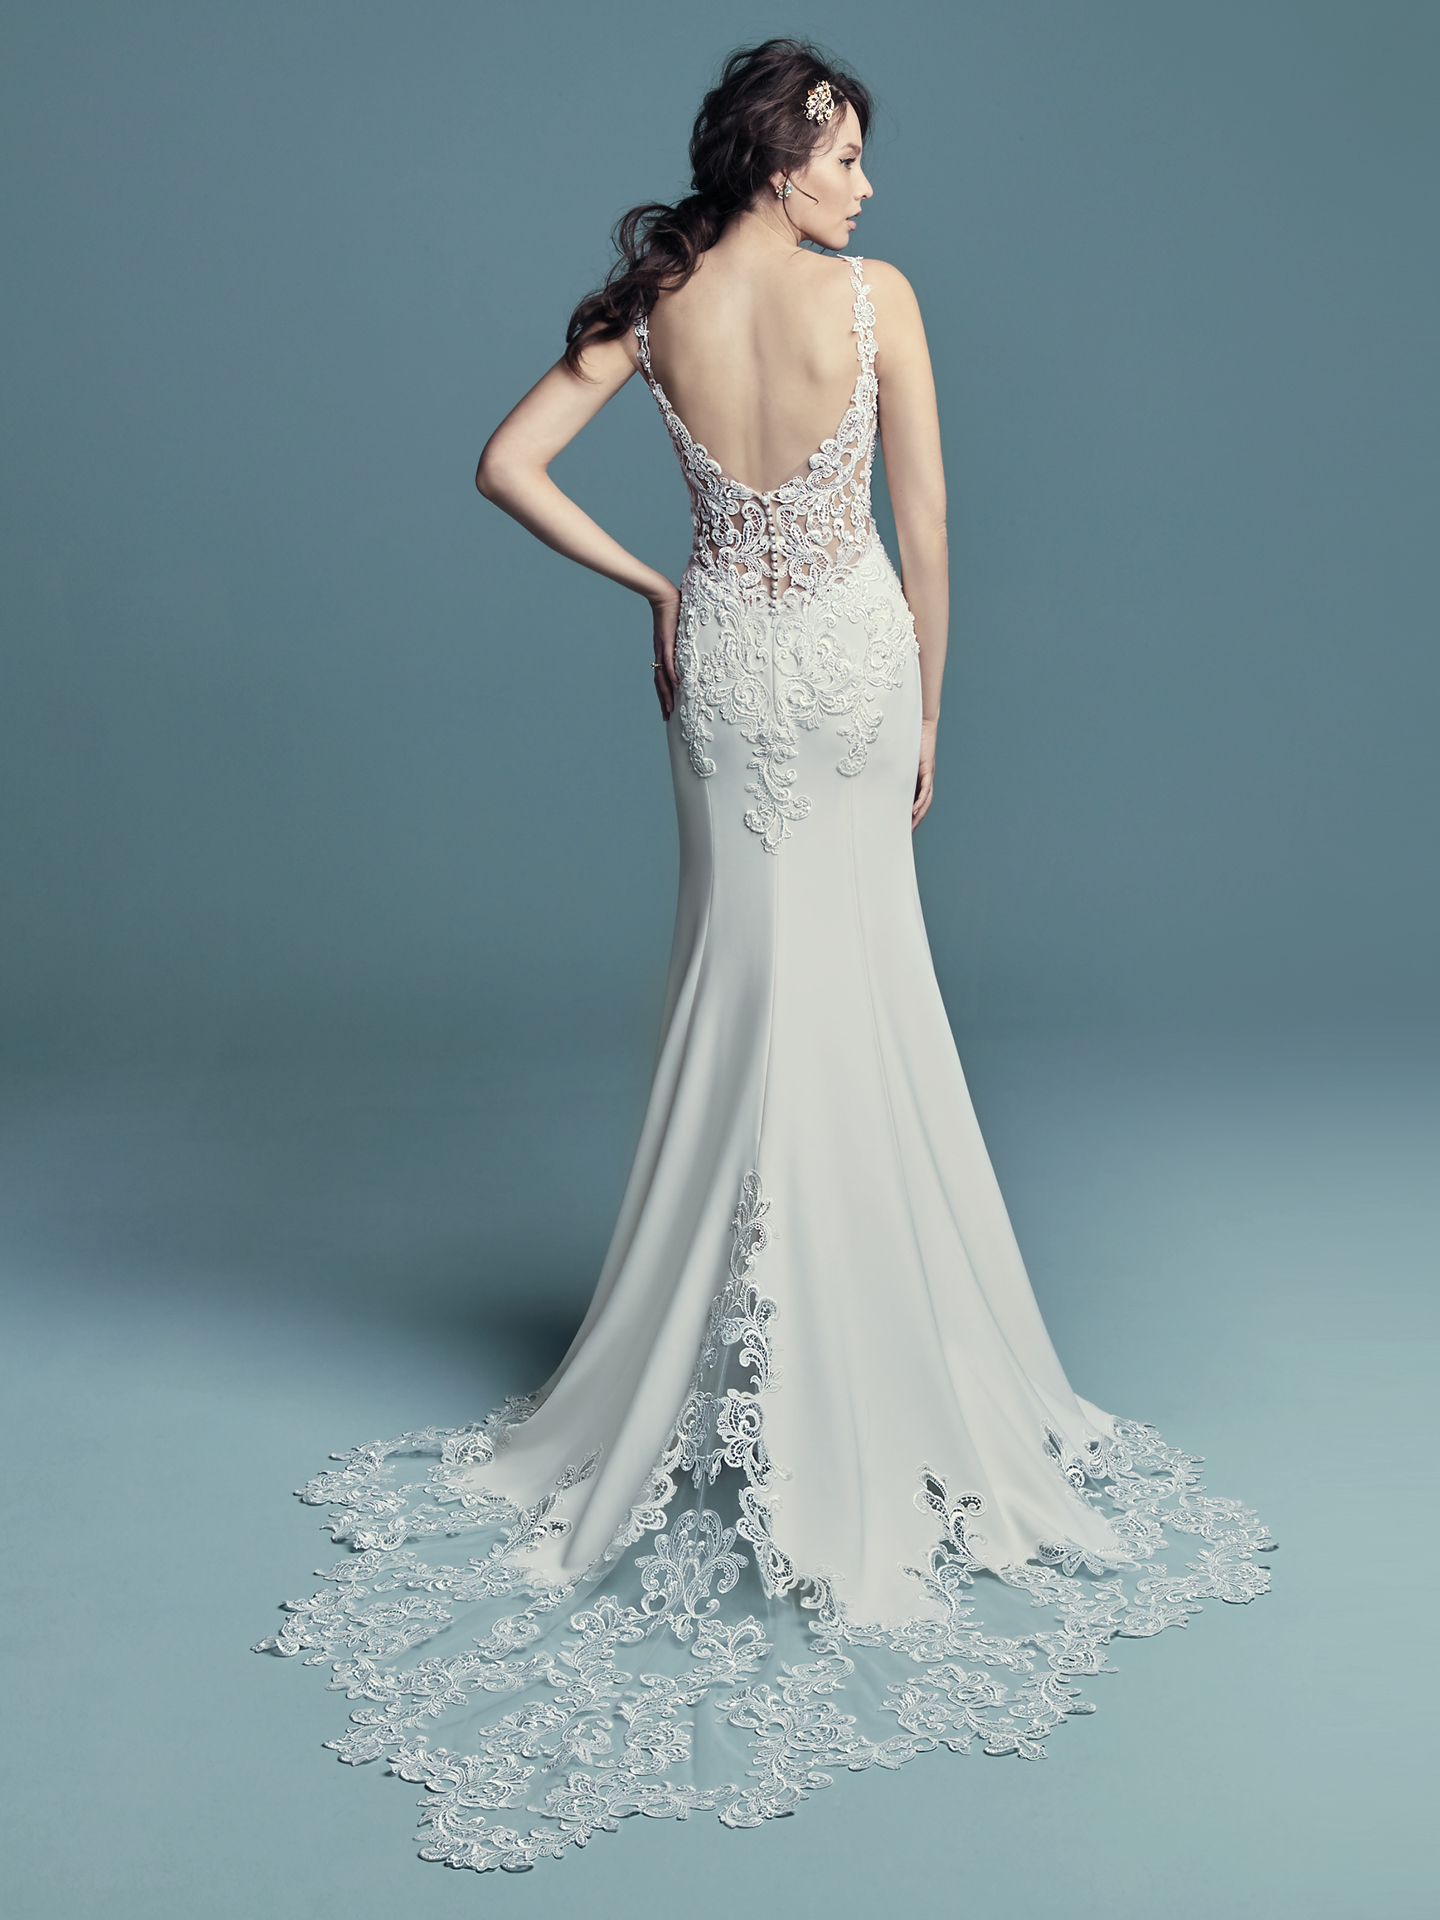 Maggie Sottero - Alaina - Back View